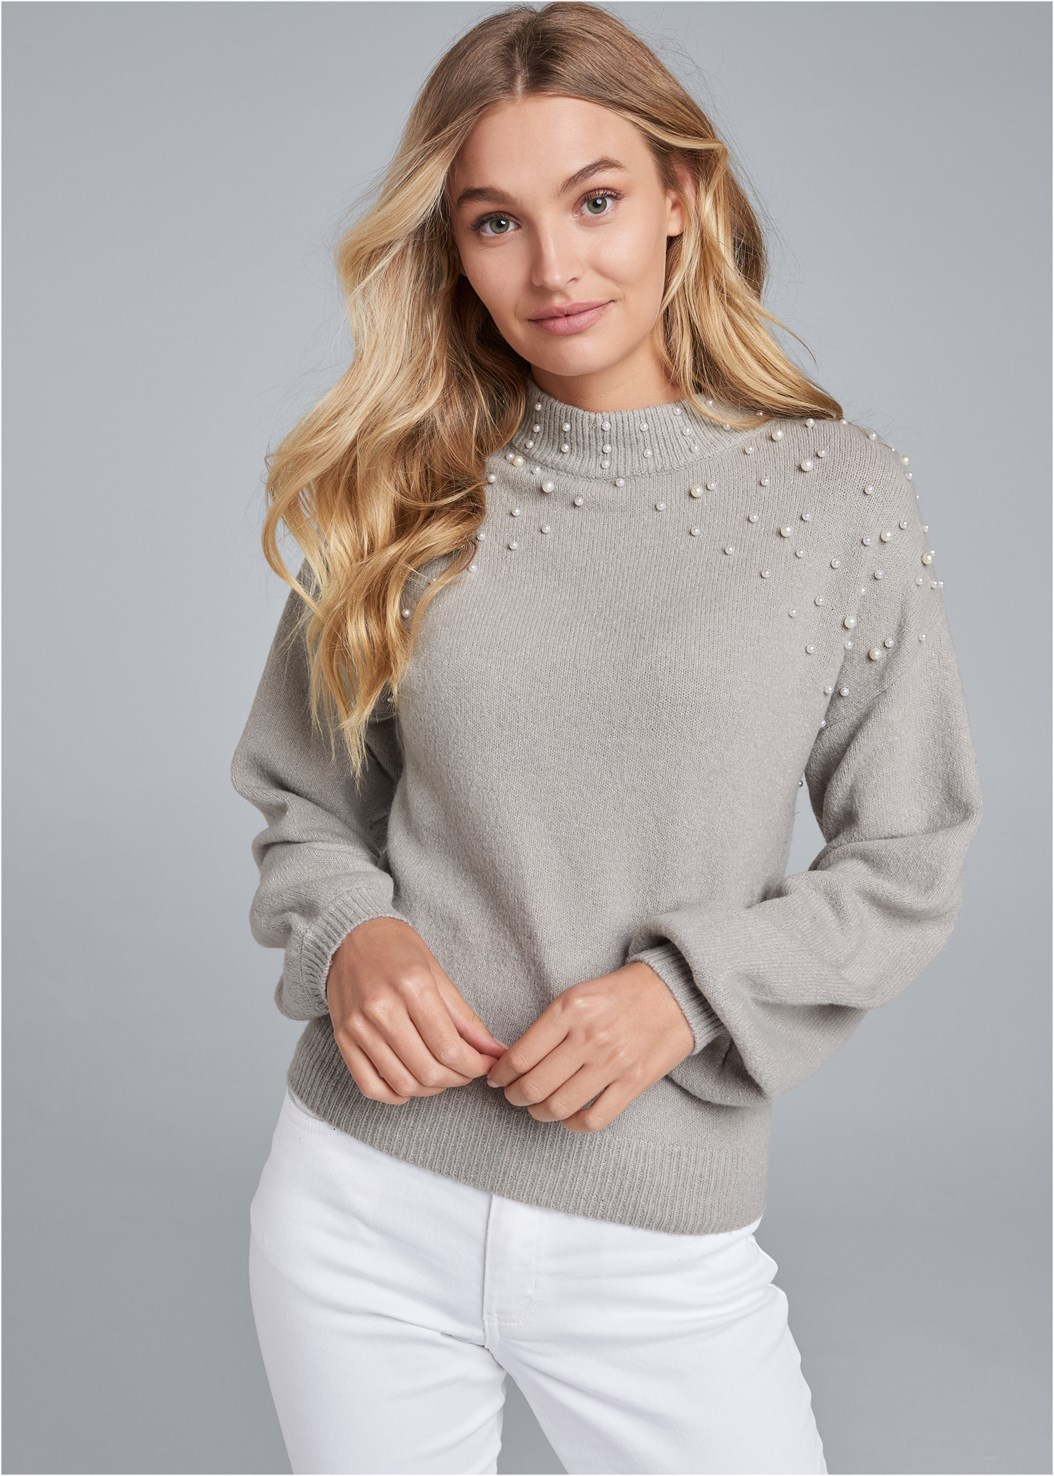 Pearl Detail Sweater,Mid Rise Color Skinny Jeans